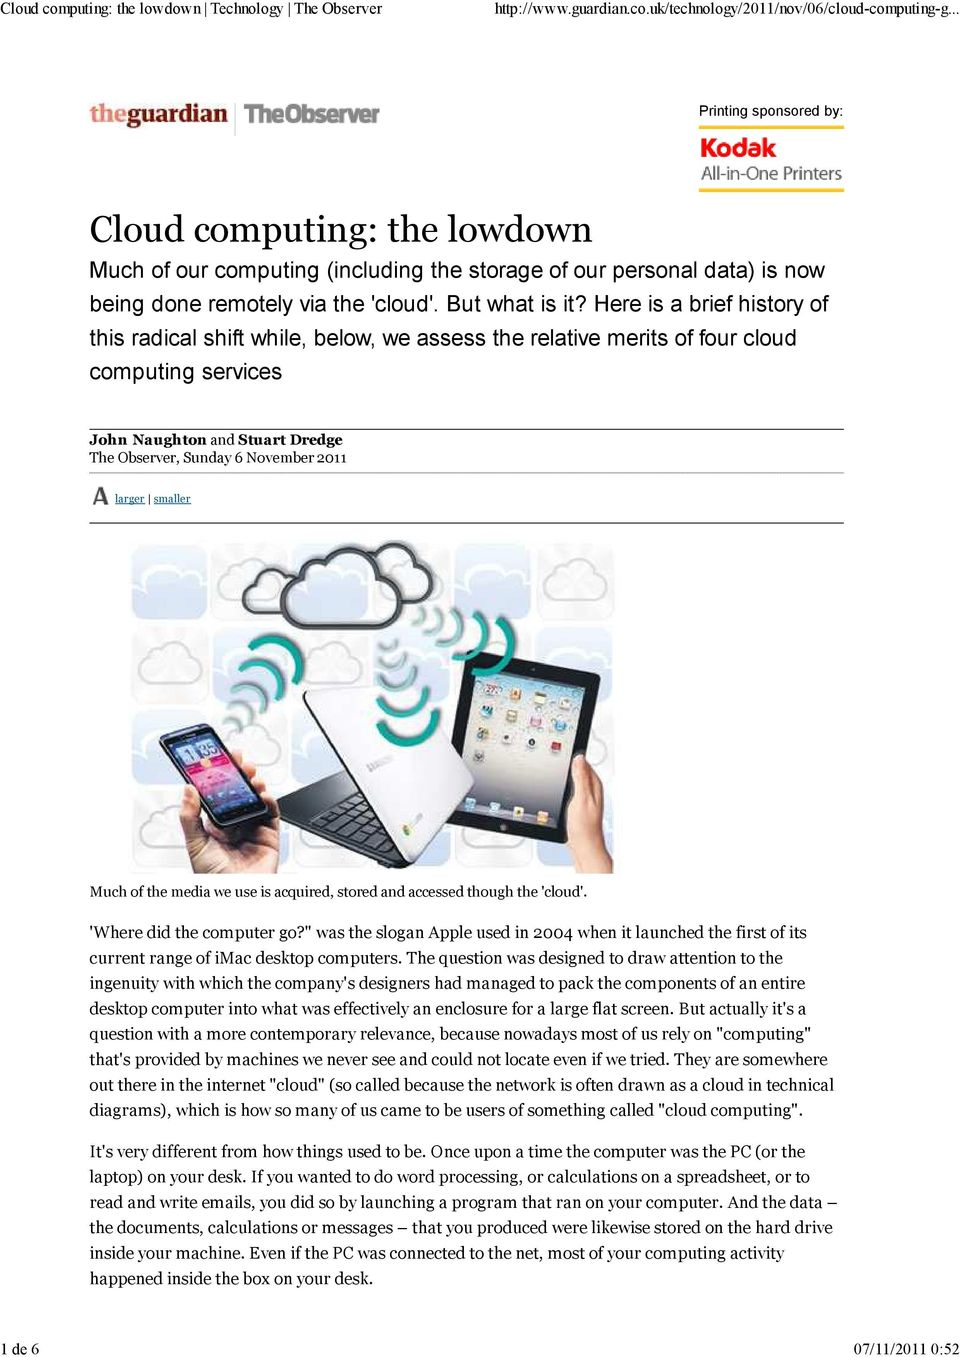 Here is a brief history of this radical shift while, below, we assess the relative merits of four cloud computing services John Naughton and Stuart Dredge The Observer, Sunday 6 November 2011 larger